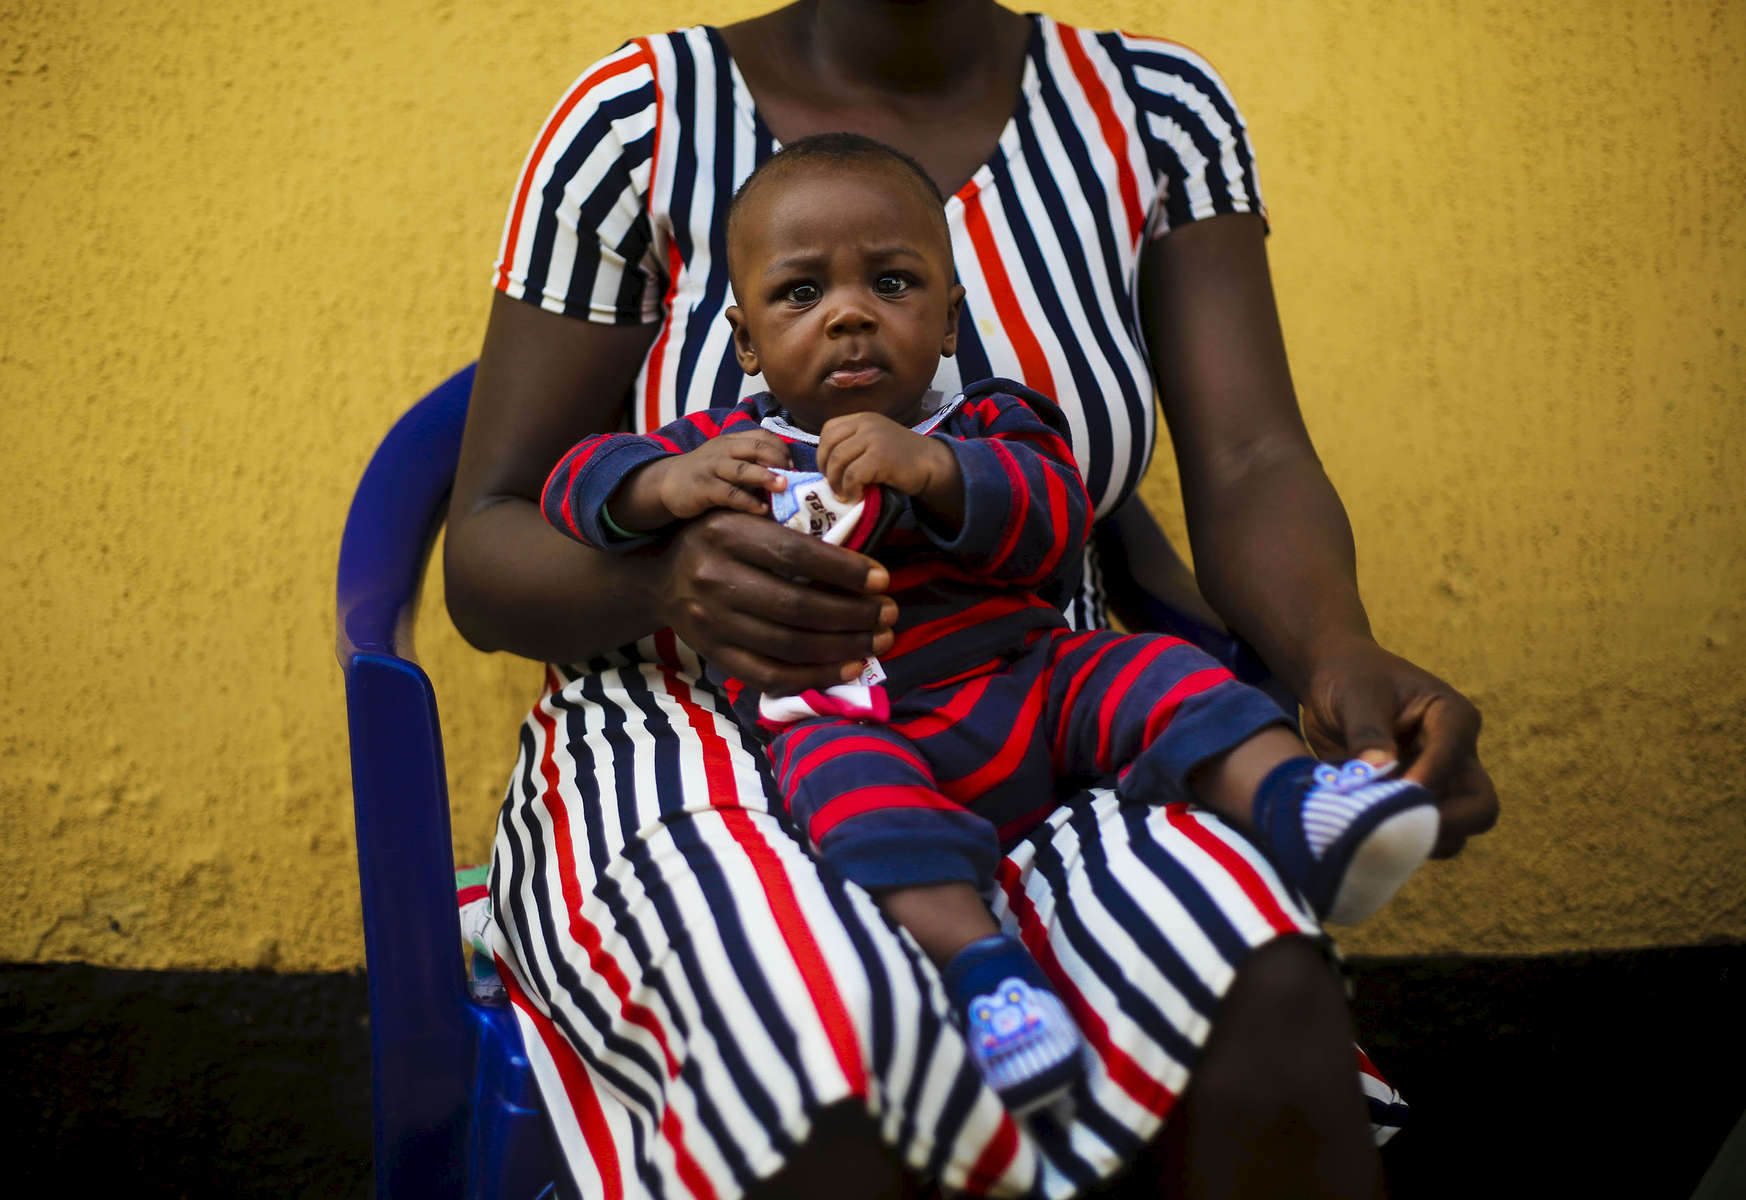 Sitting on his mother's legs, Andrew, 9 months, waits for his vaccination at the medical facility  of Kuchigoro  in Abuja, Nigeria.